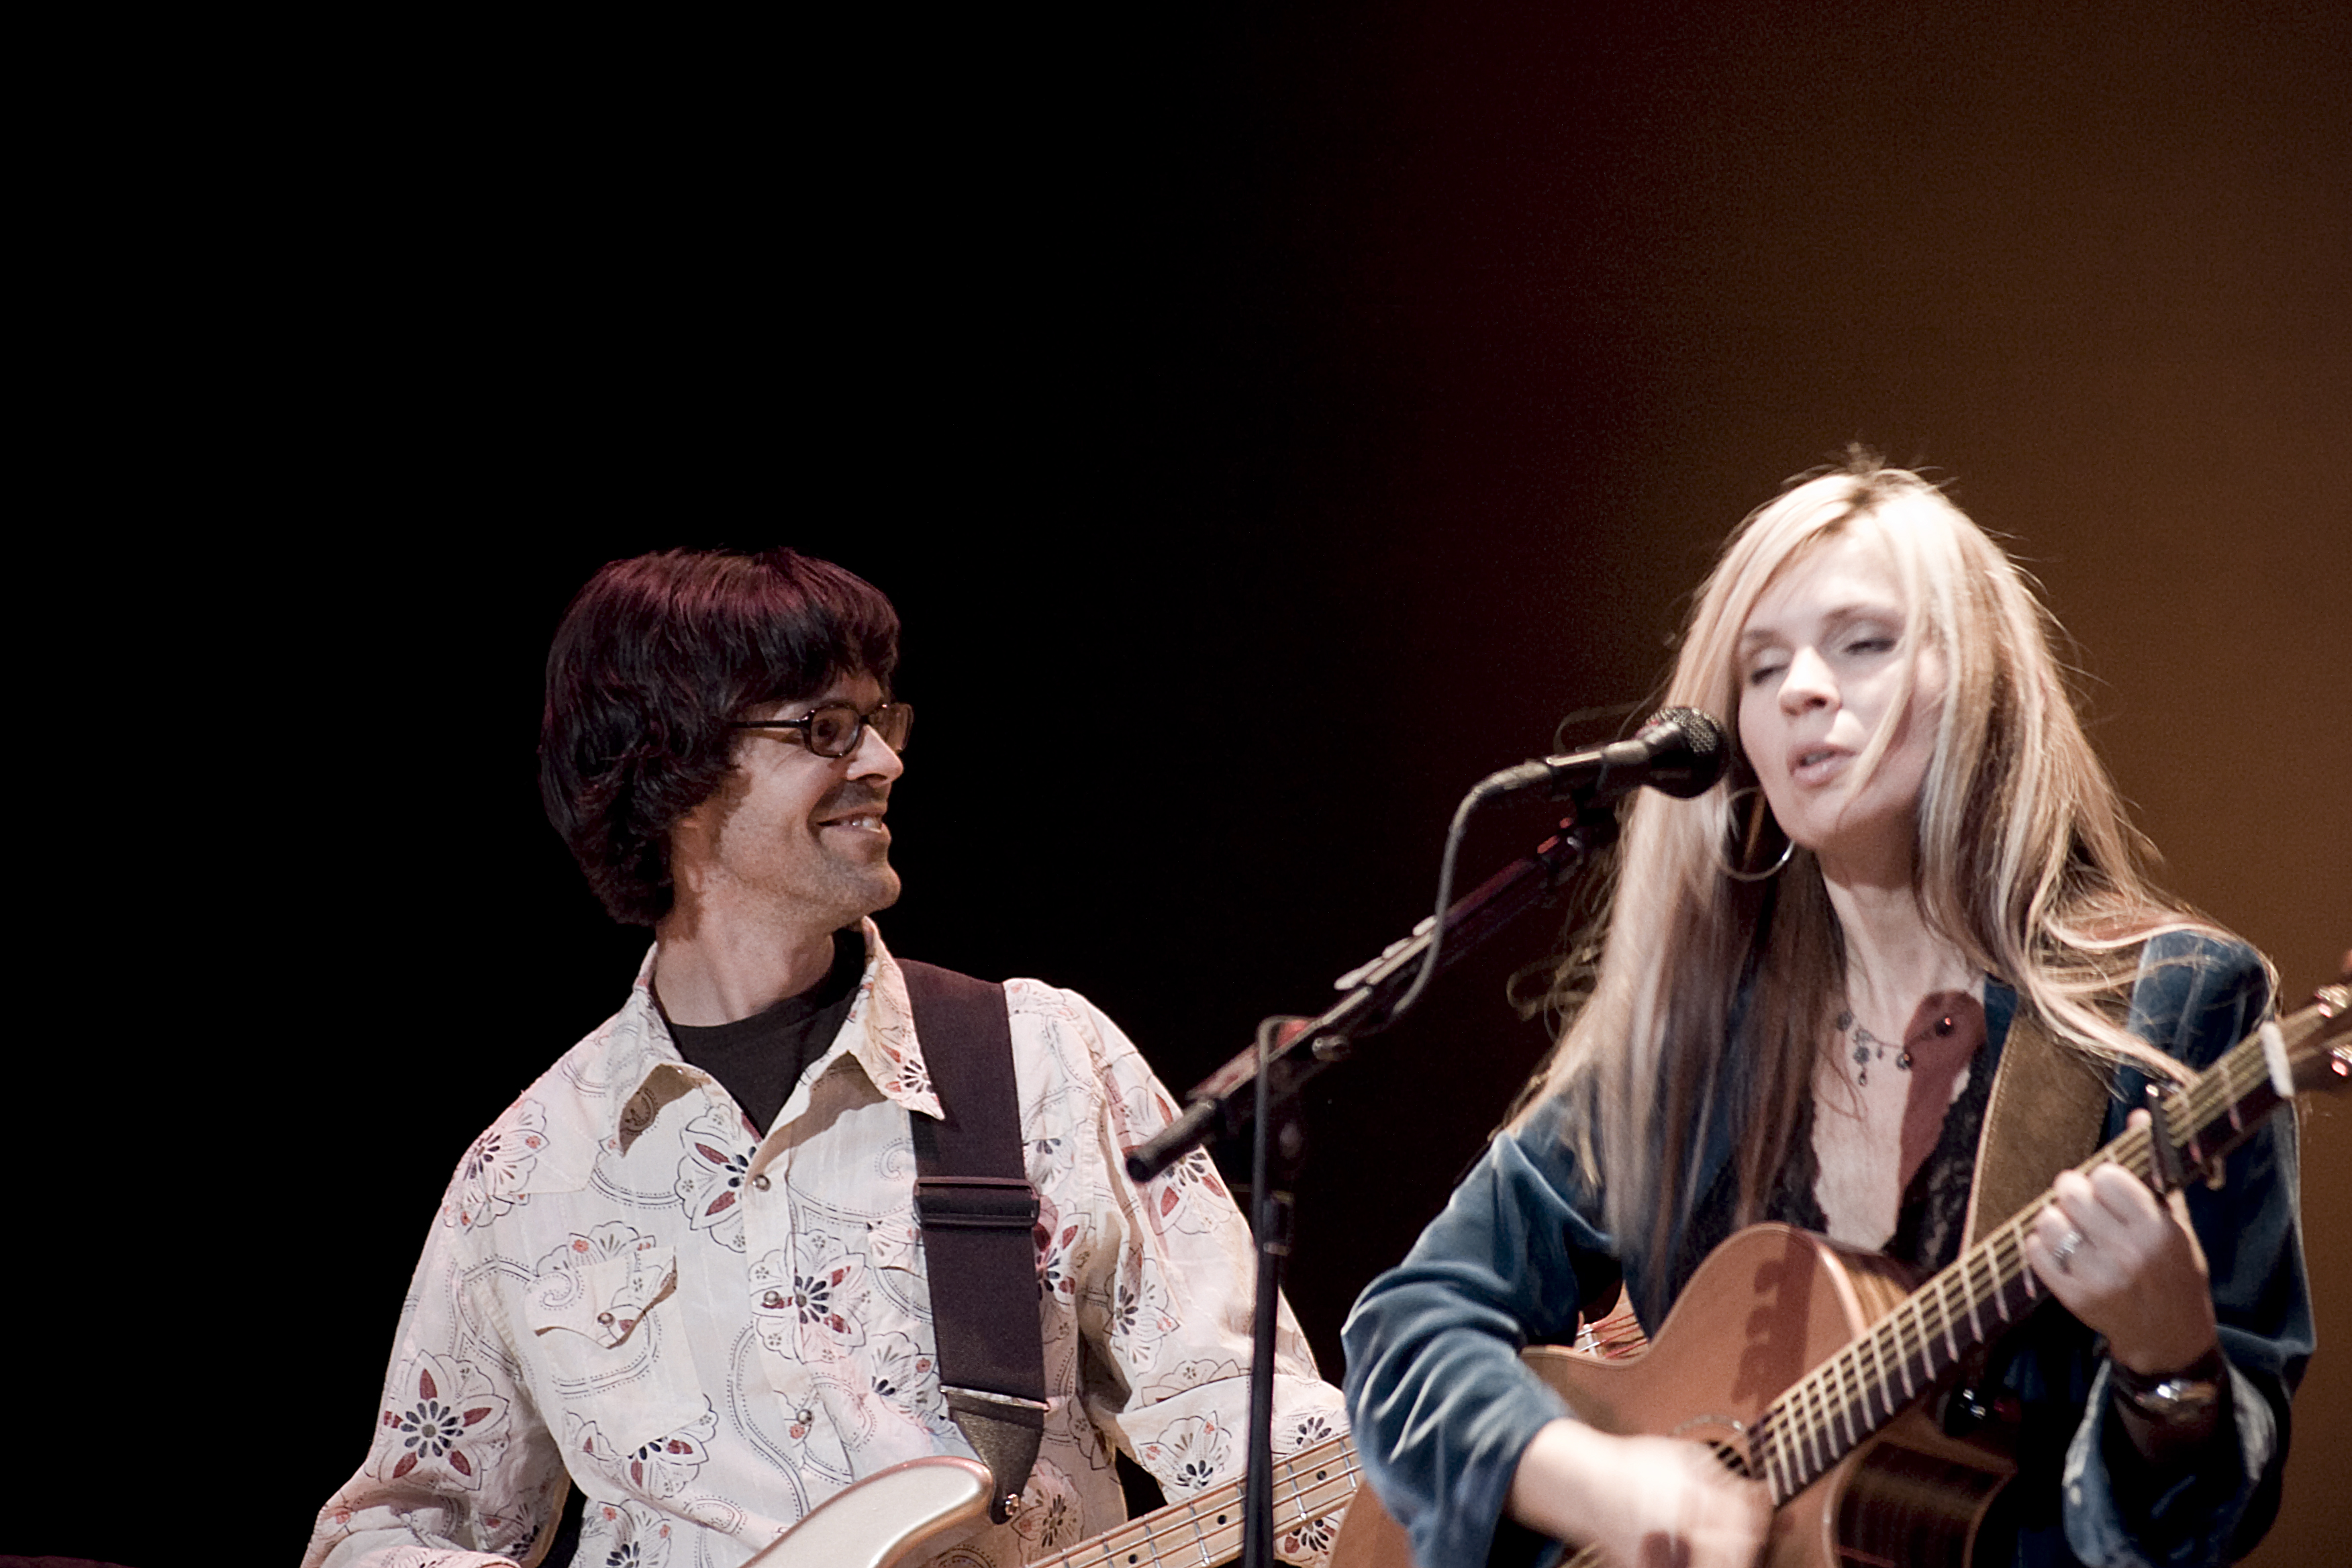 Linford Detweiler and Karin Bergquist (Over the Rhine)